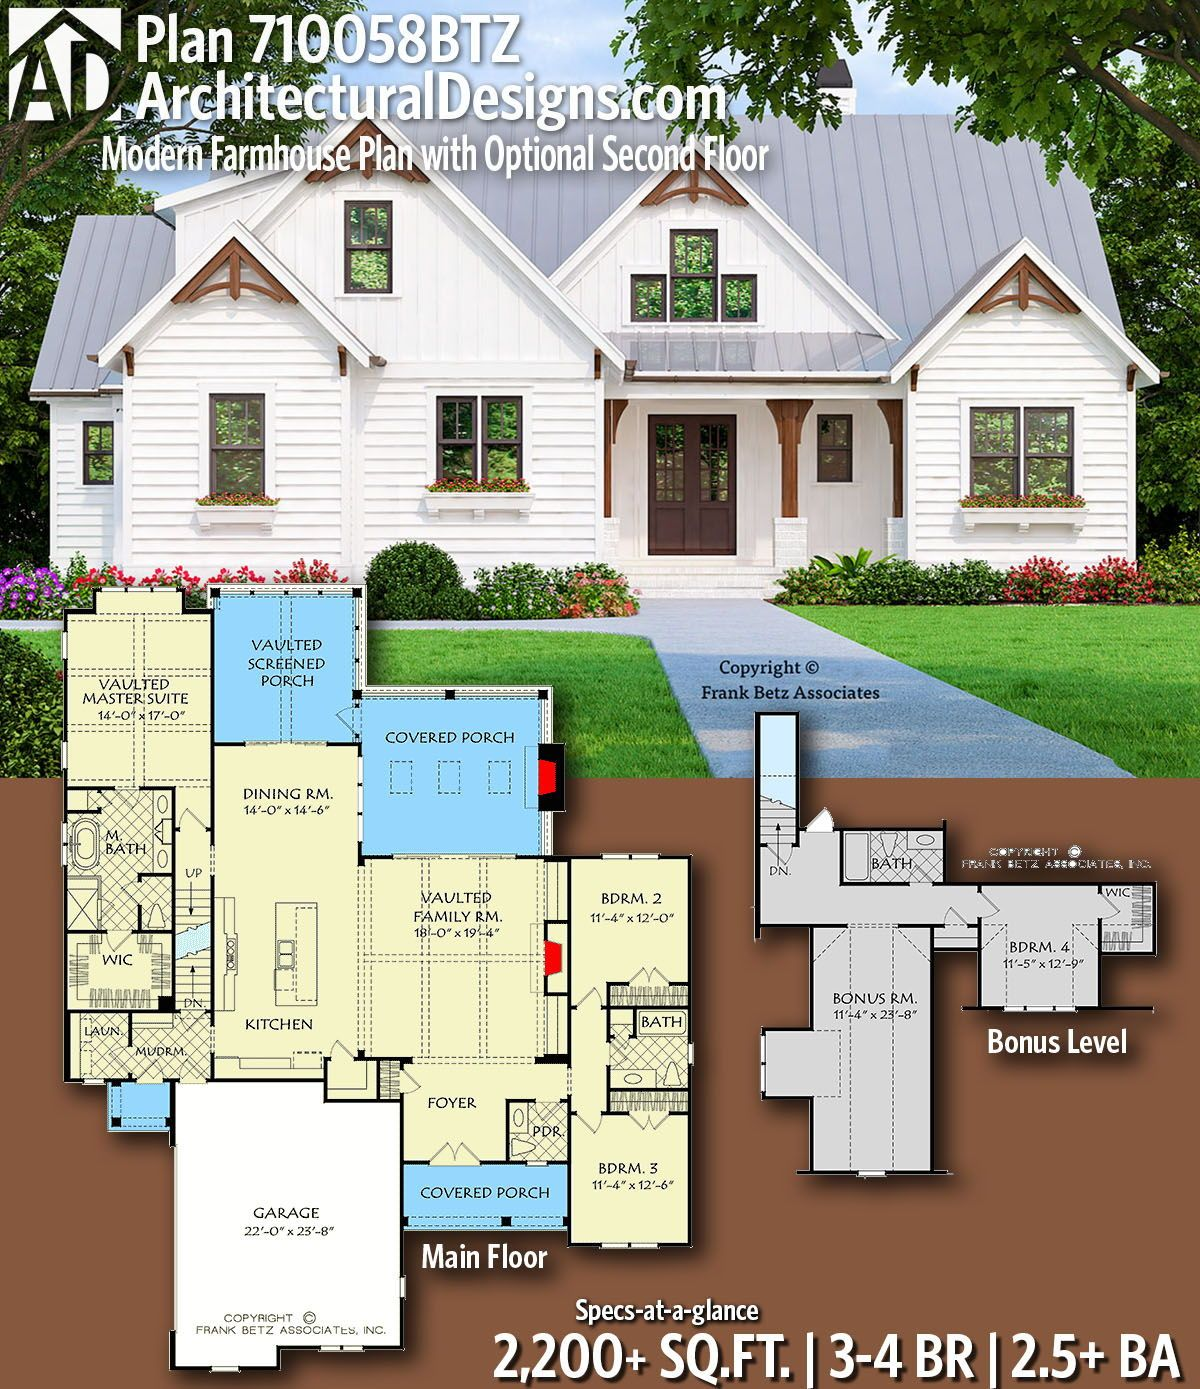 Plan 710058btz Modern Farmhouse Plan With Optional Second Floor Modern Farmhouse Plans Farmhouse Plans House Plans Farmhouse